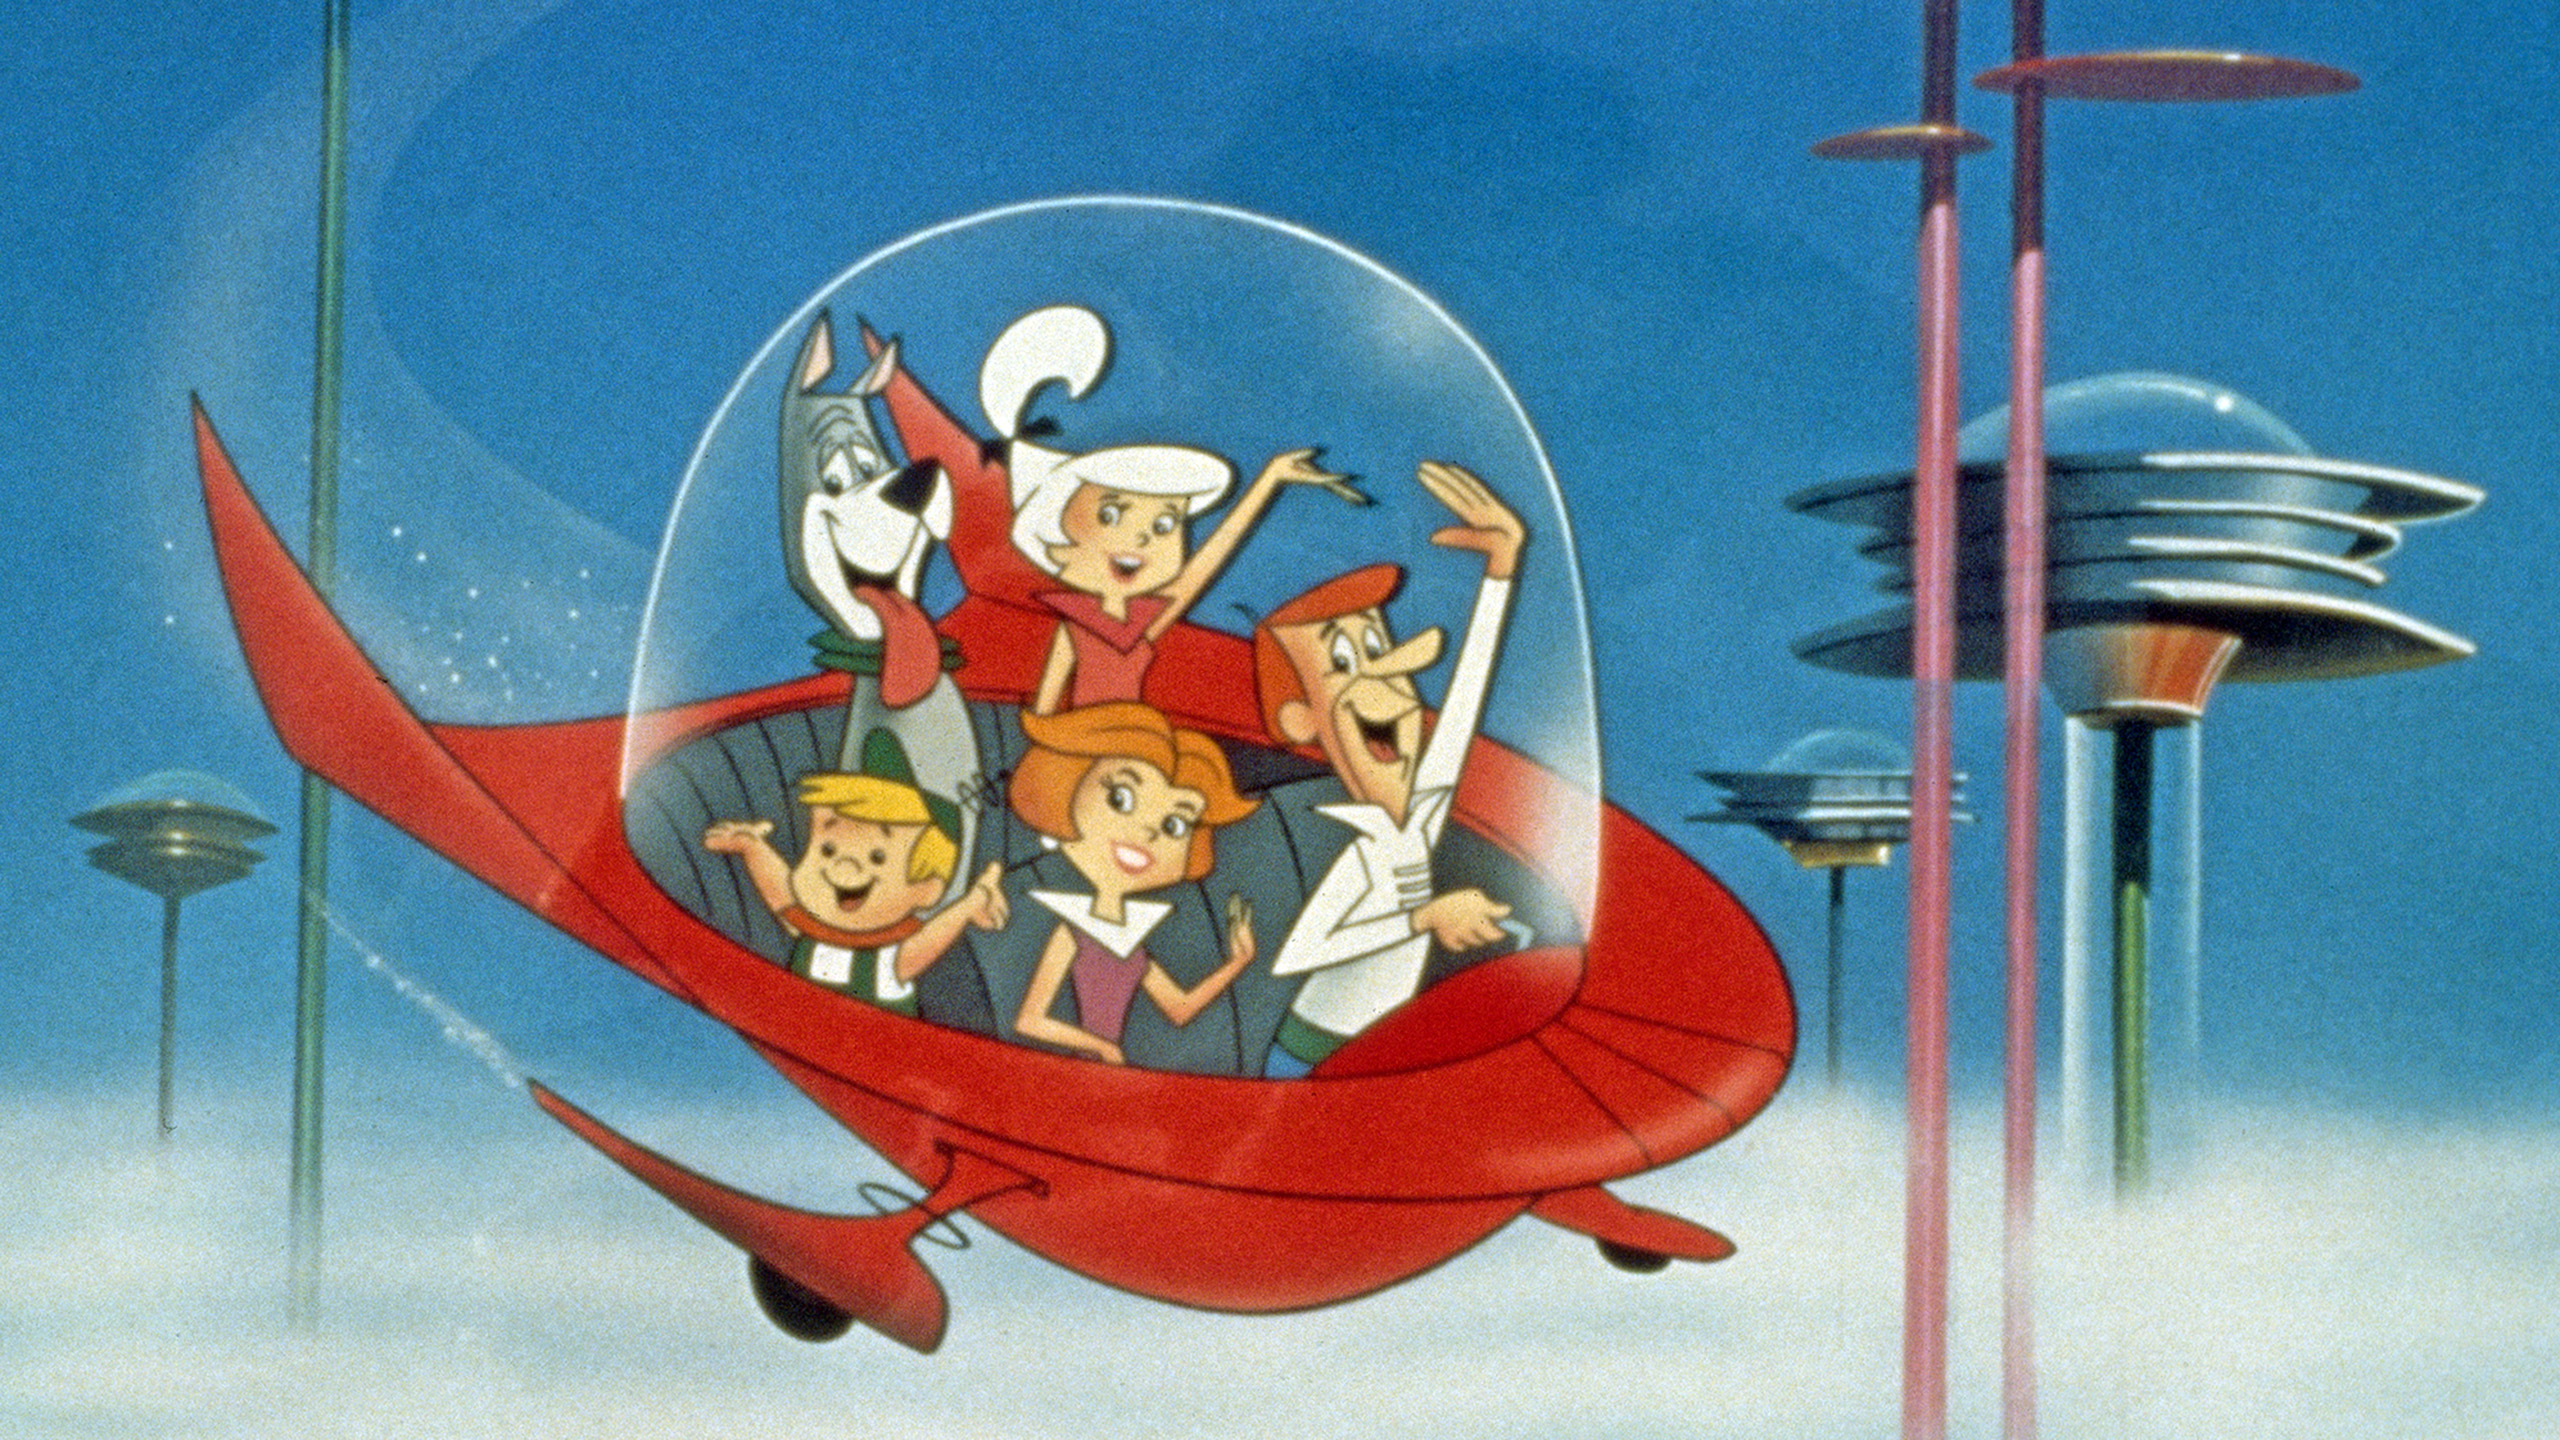 THE NAKED CITY: The 'Jetsons' Syndrome